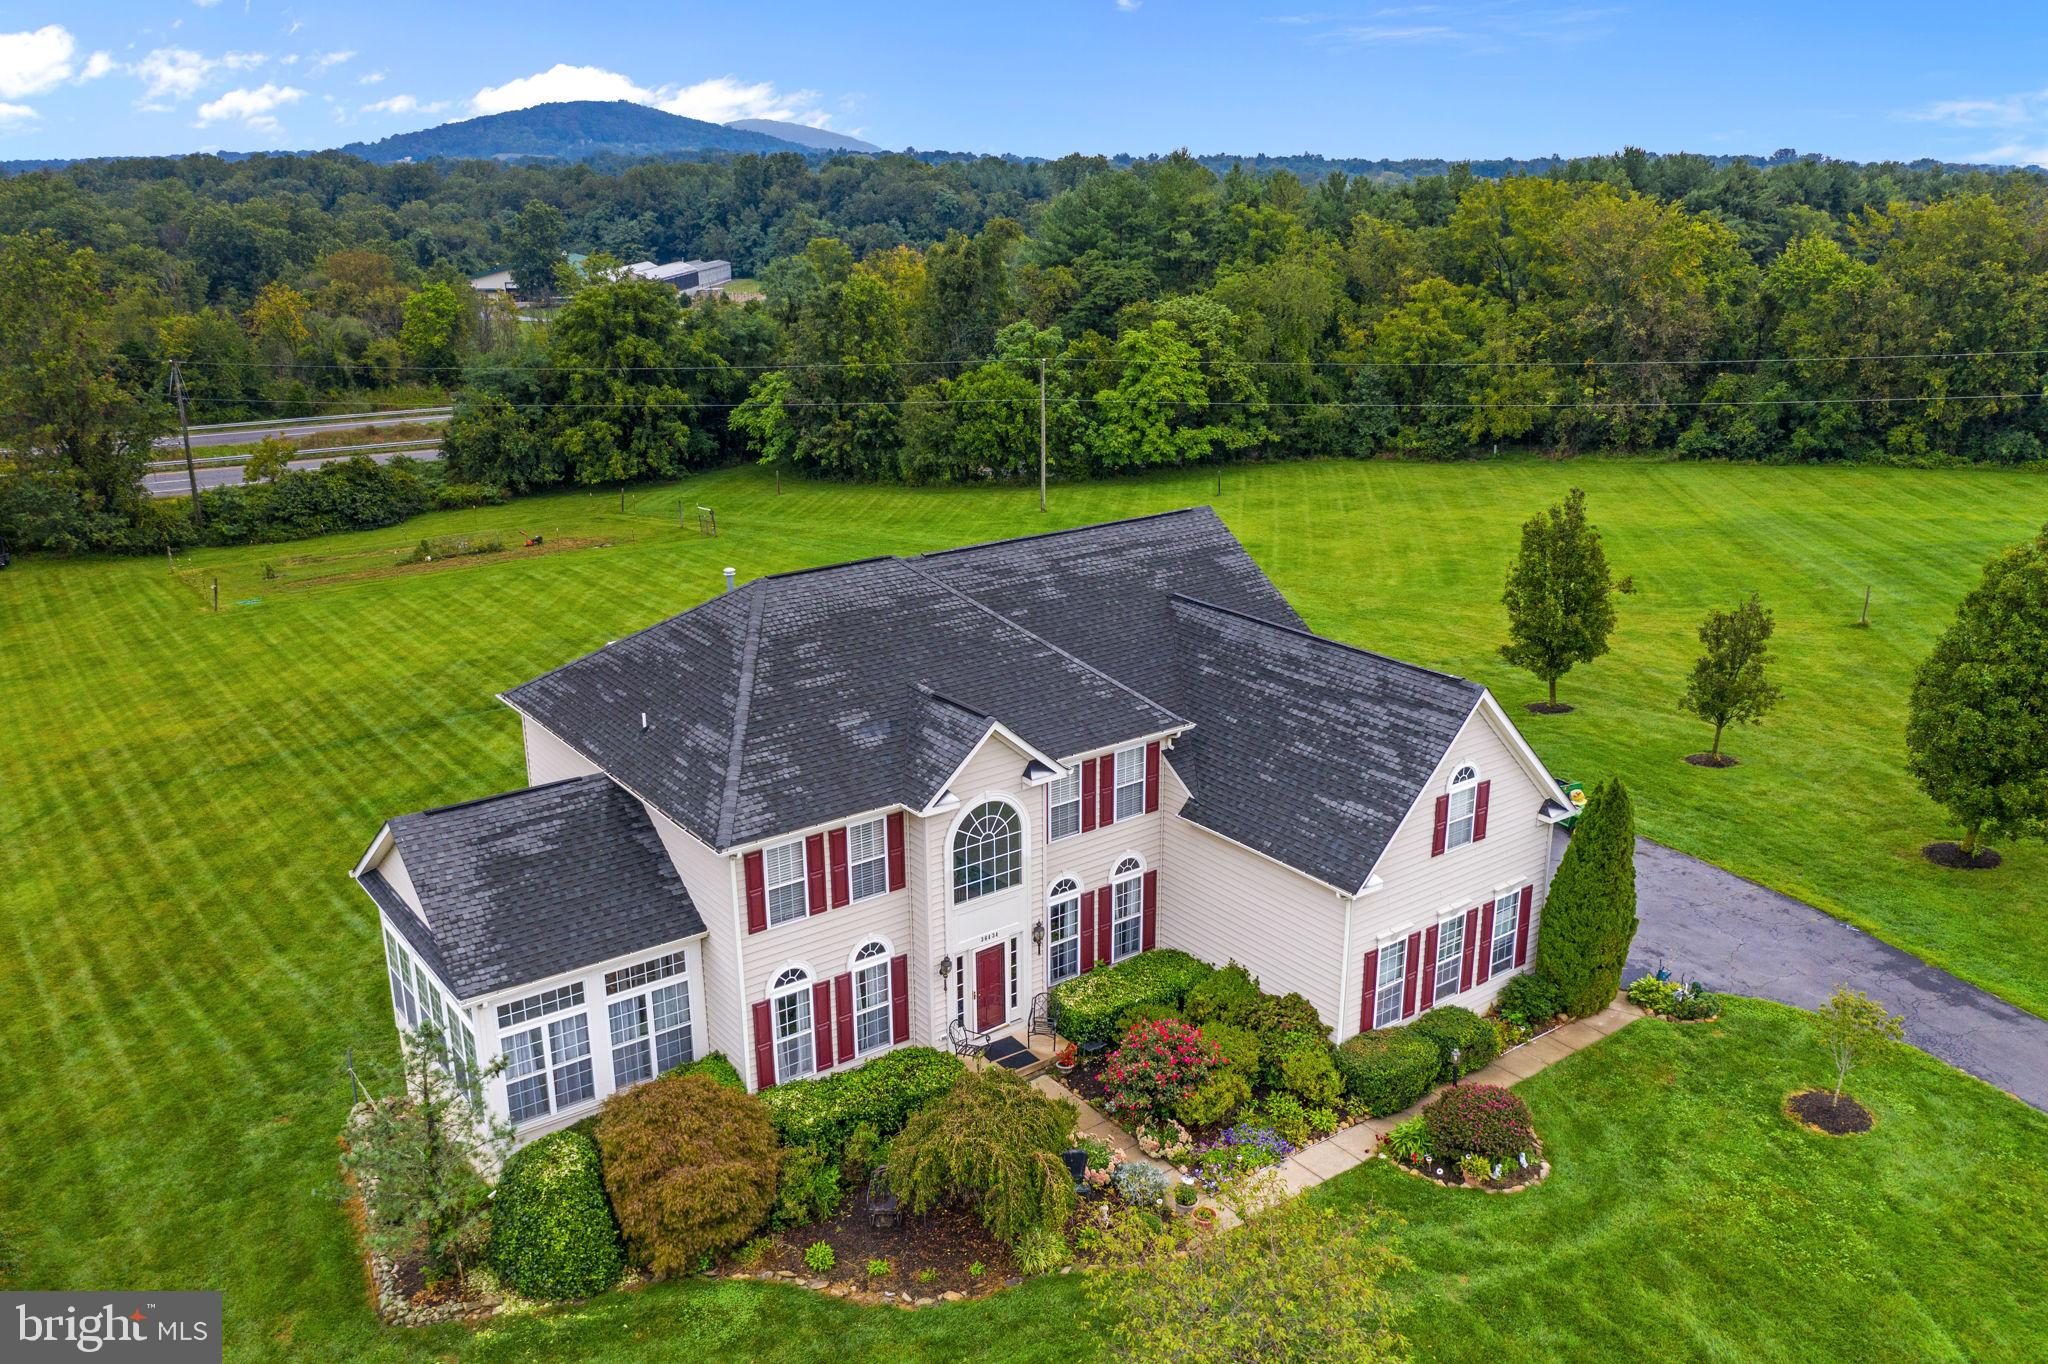 Ryan Homes Built Avalon Model in the Light Right Subdivision of Round Hill on 3.71 acres. 3 car side